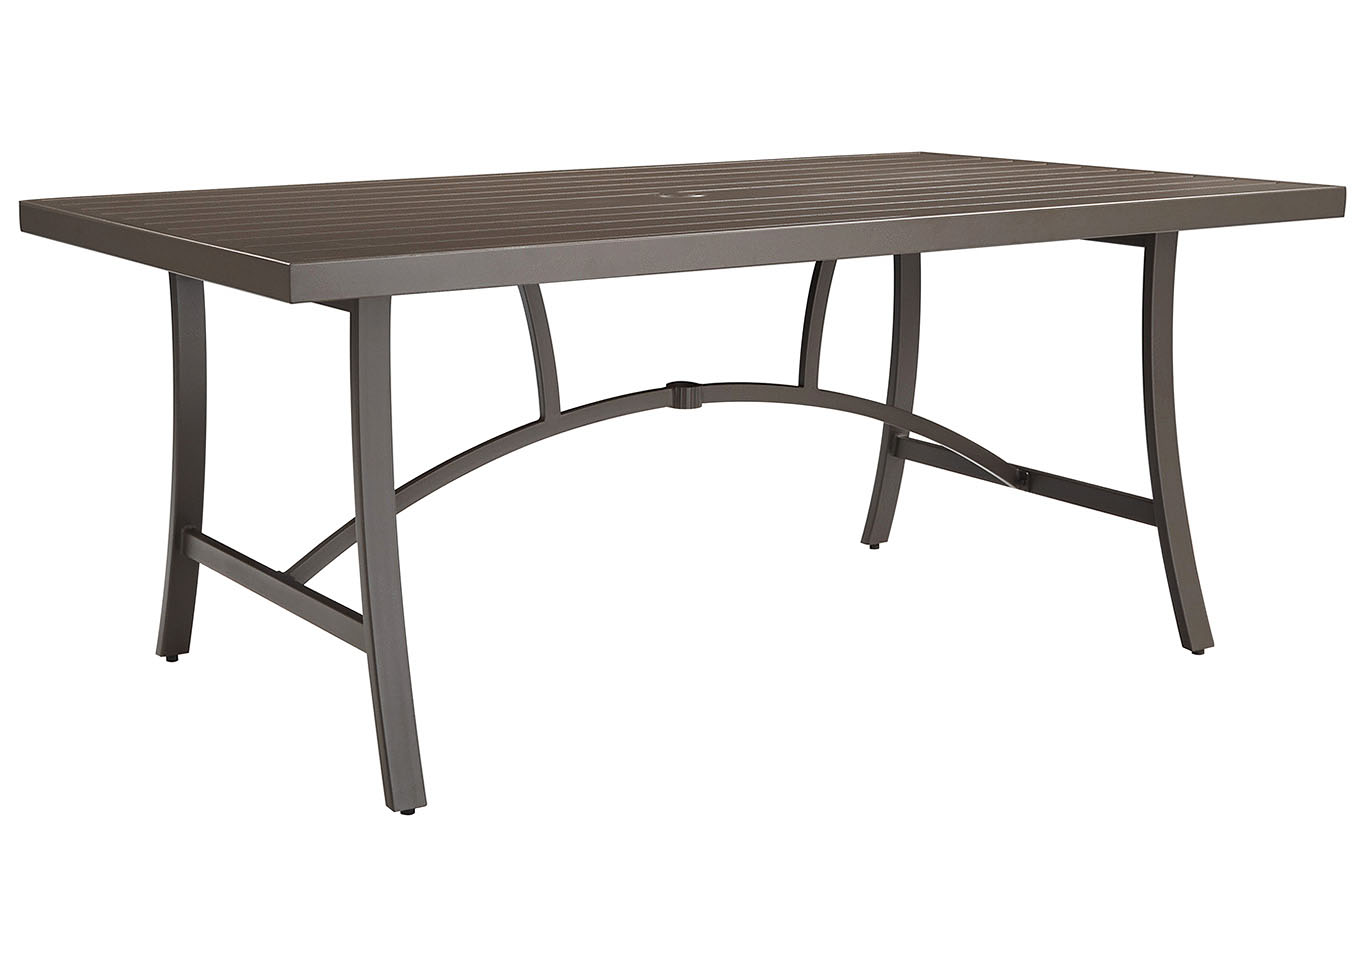 Predmore Beige/Brown Rectangular Dining Table,Outdoor By Ashley